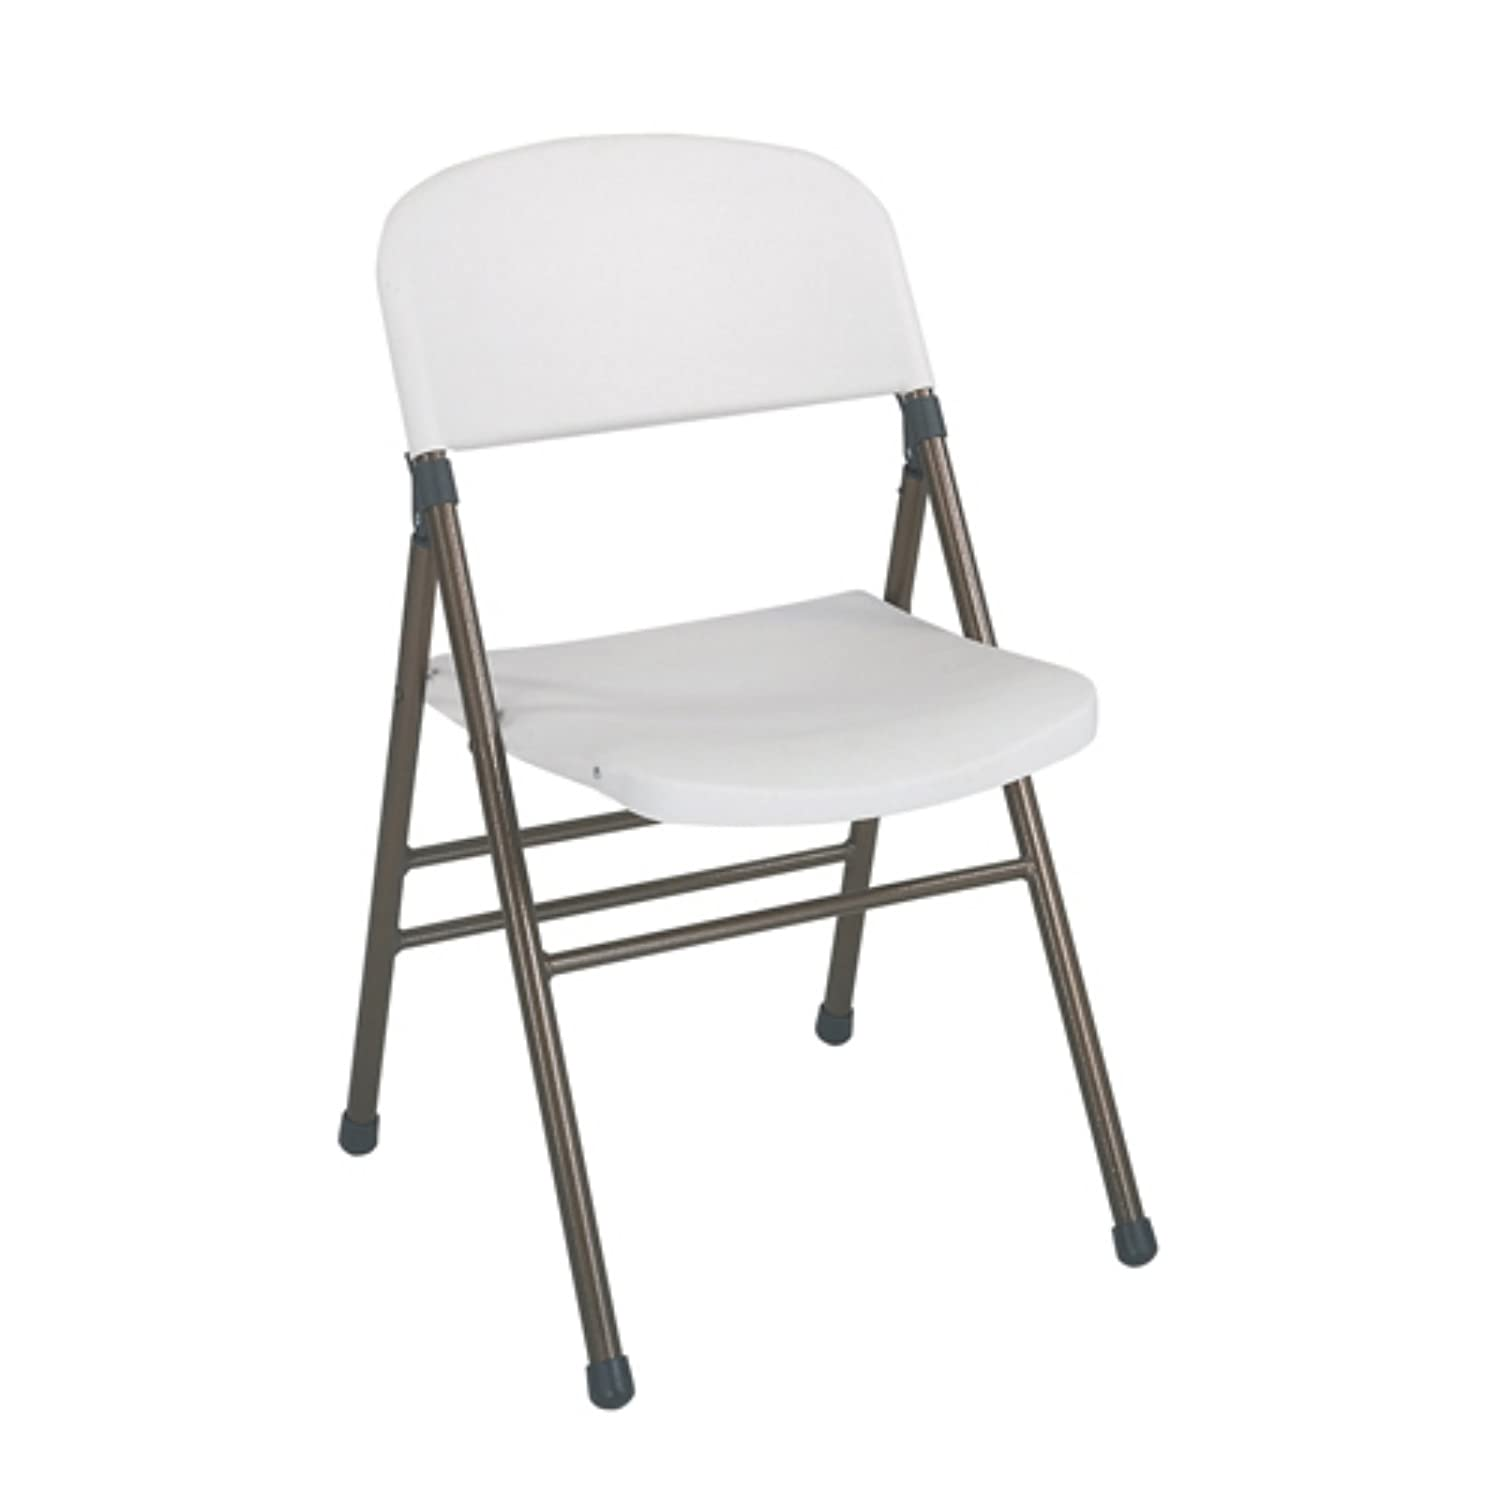 White Plastic Folding Chairs.Cosco Industries Inc Commercial Grade Molded Folding Chair In White Set Of 4 Set Of 4